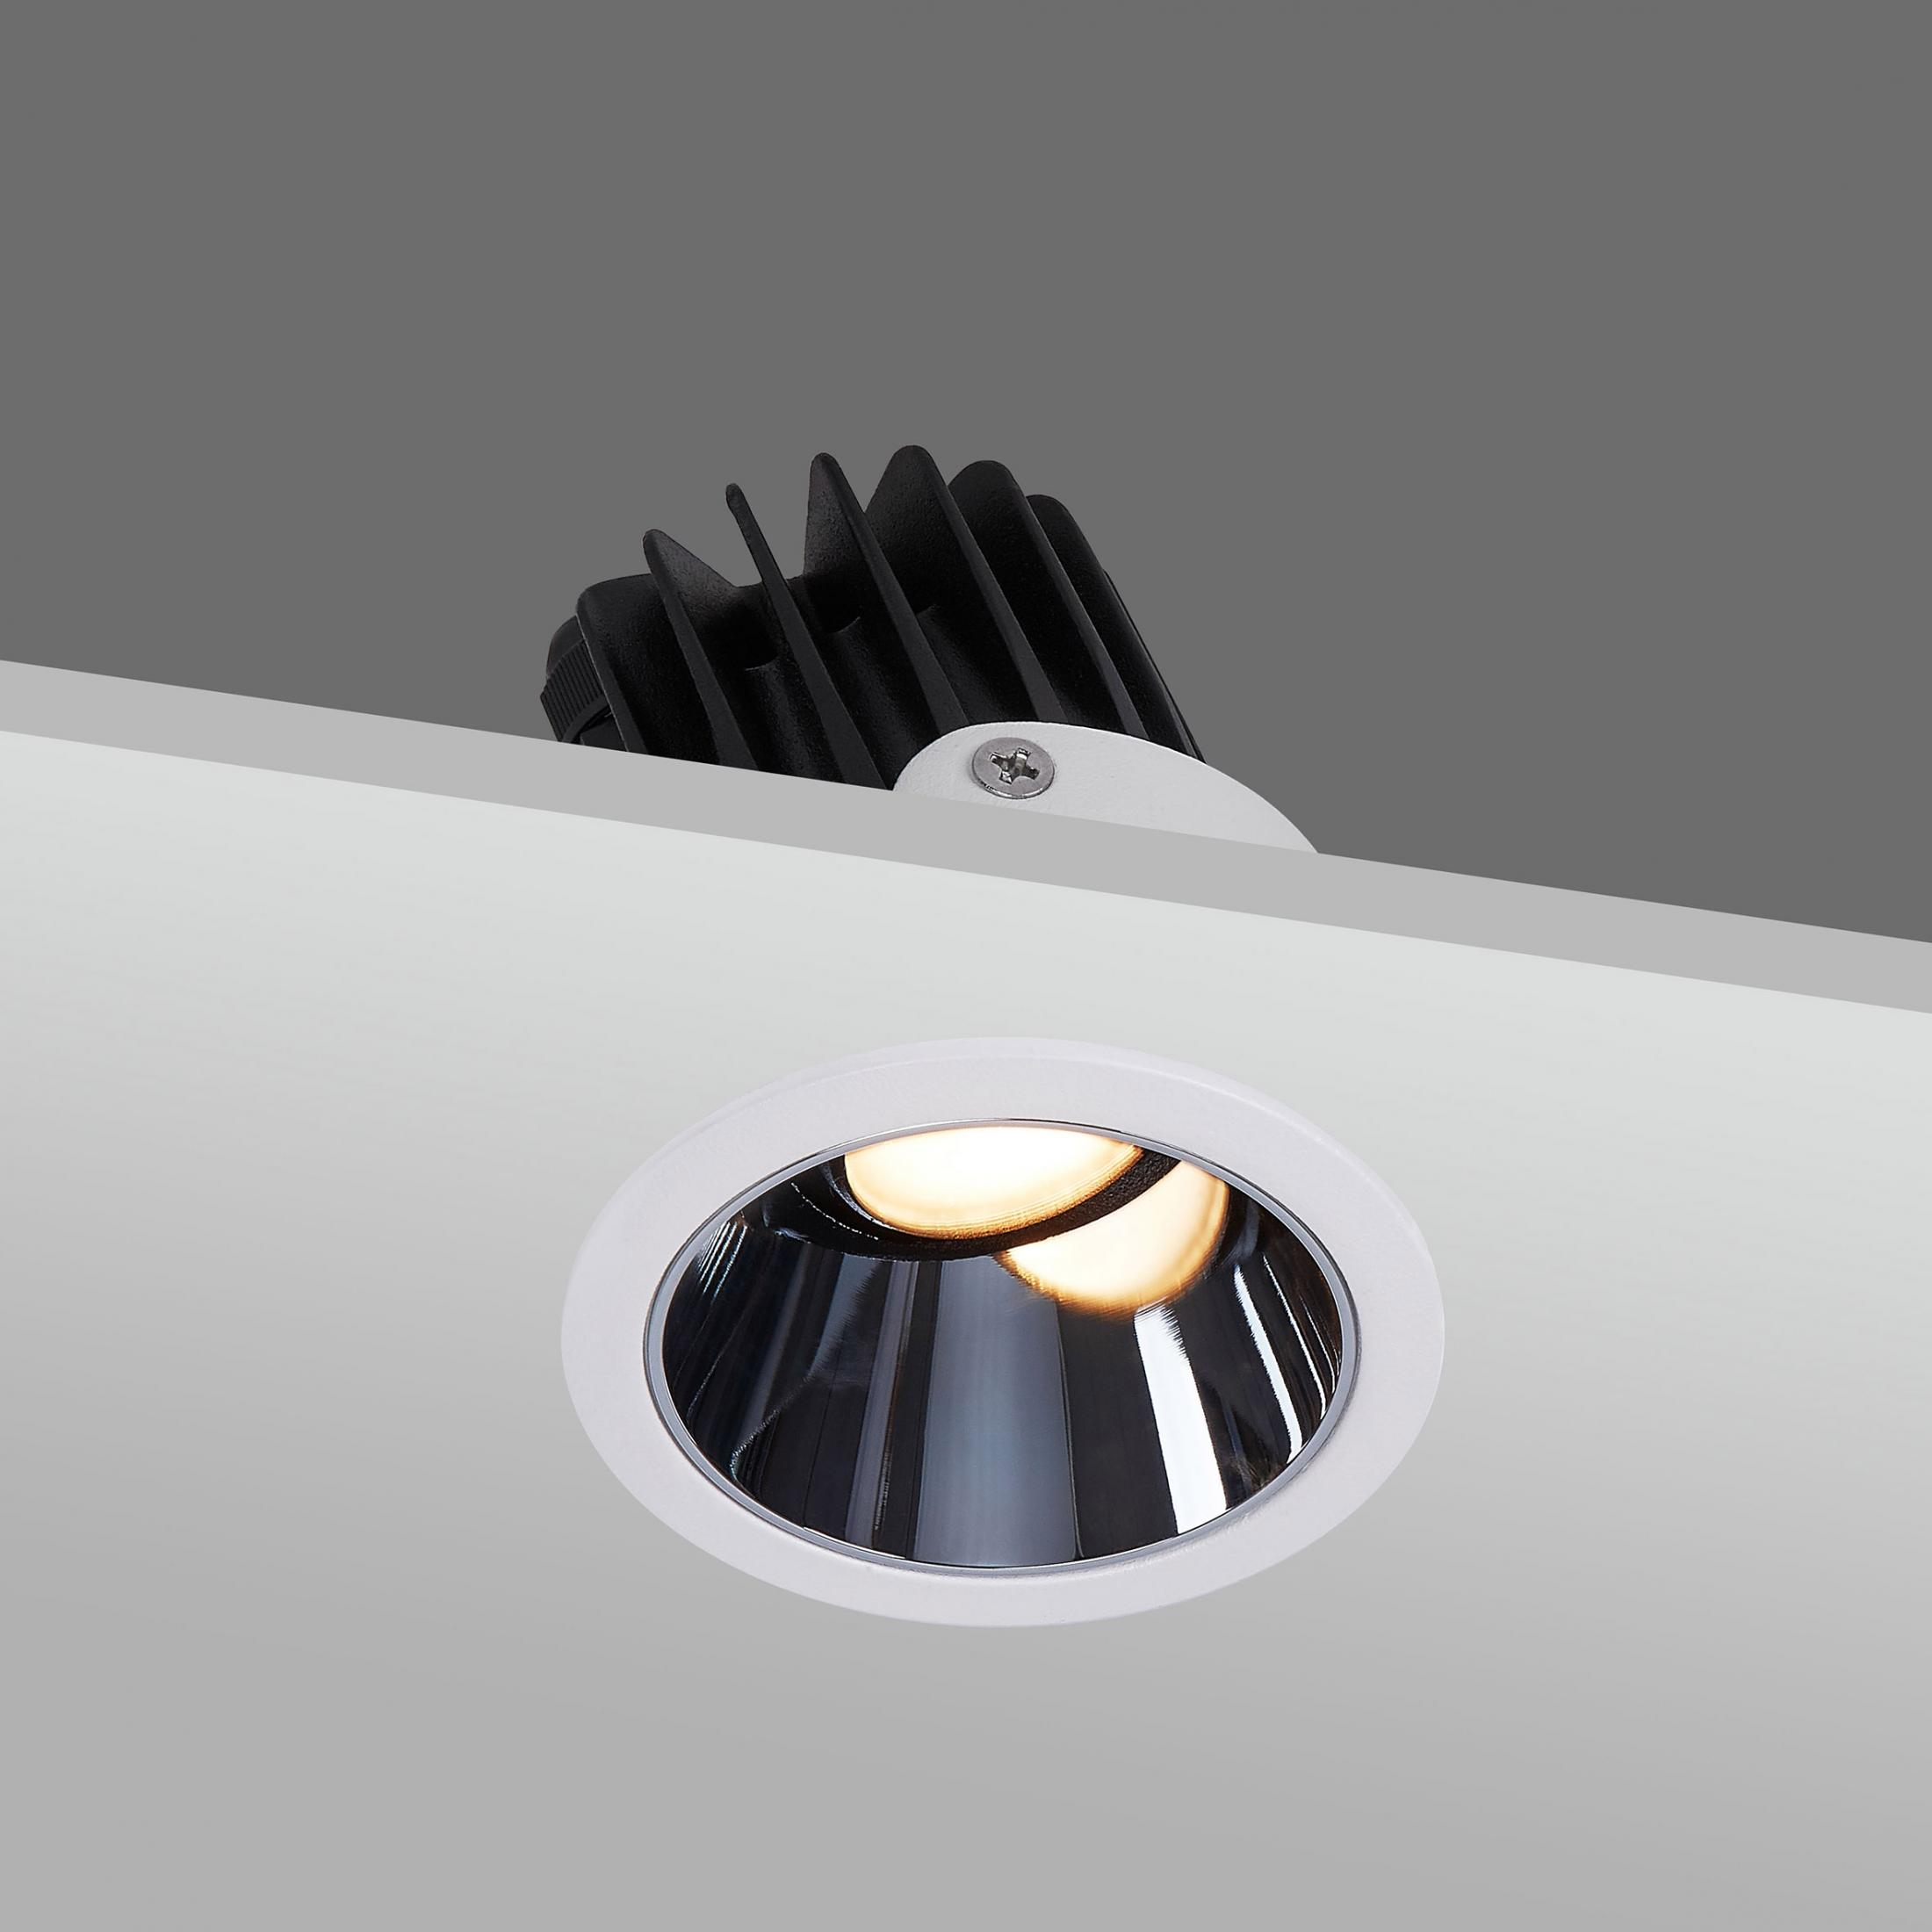 7W LED Recessed adjustable downlight